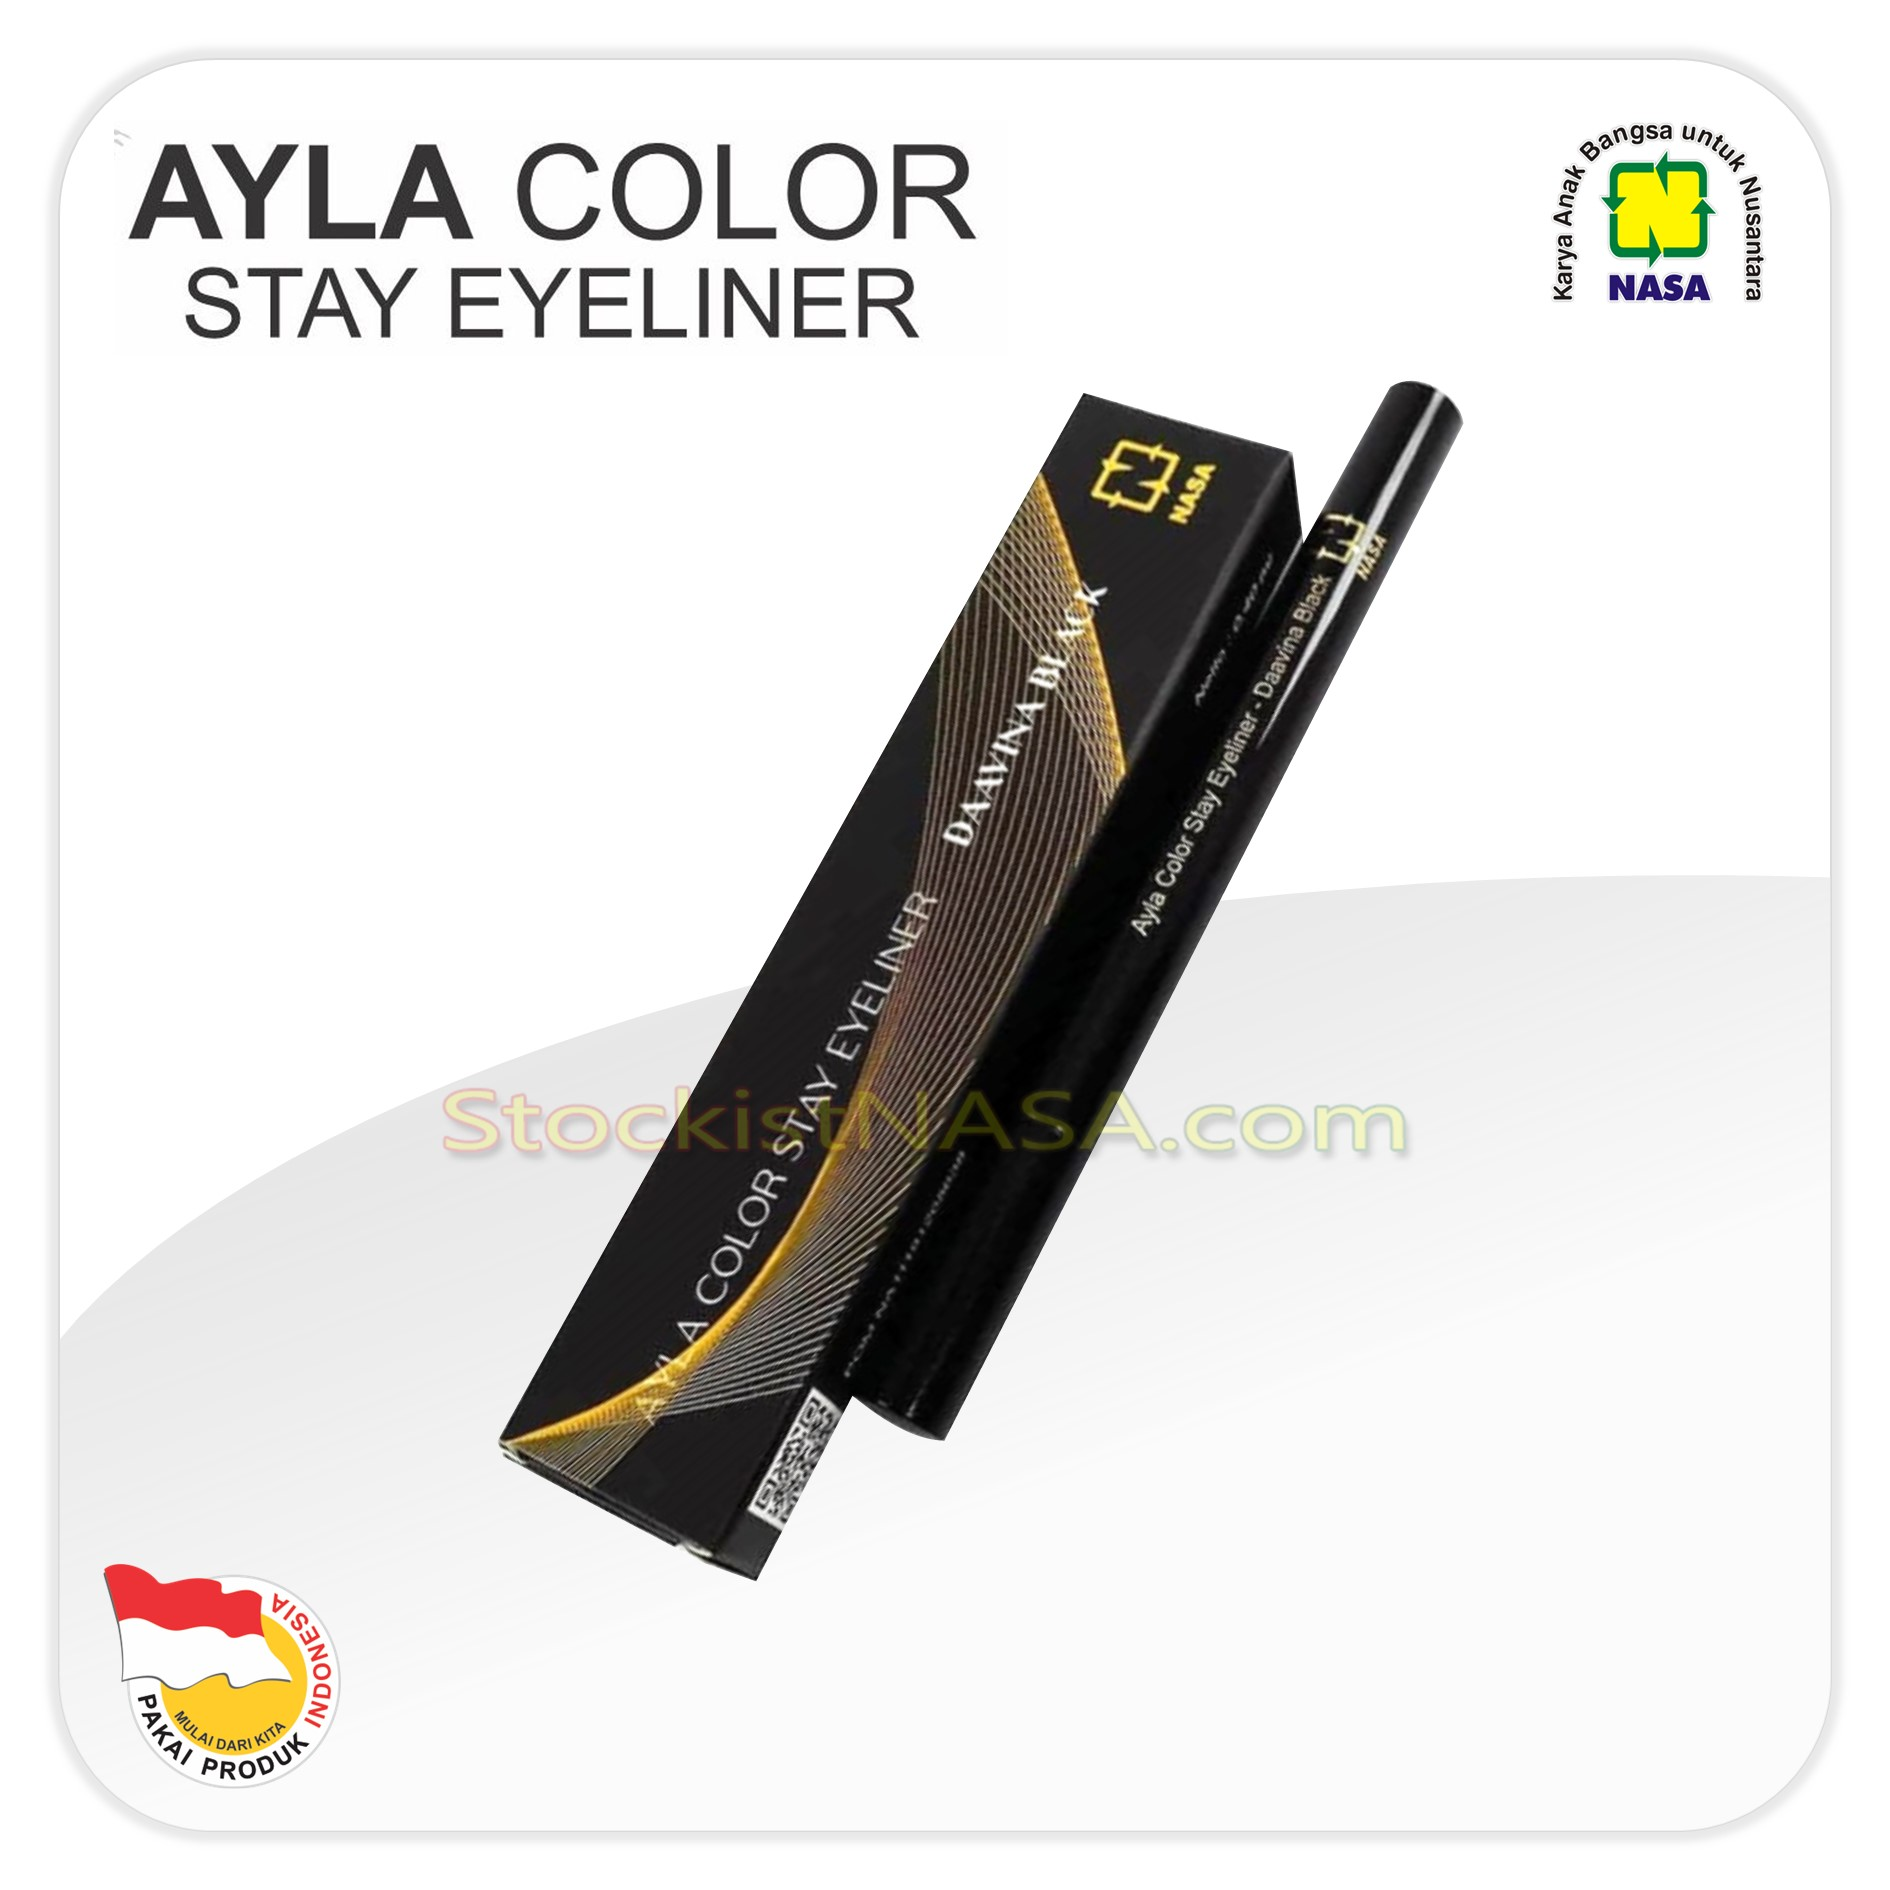 AYLA Color Stay Eyeliner